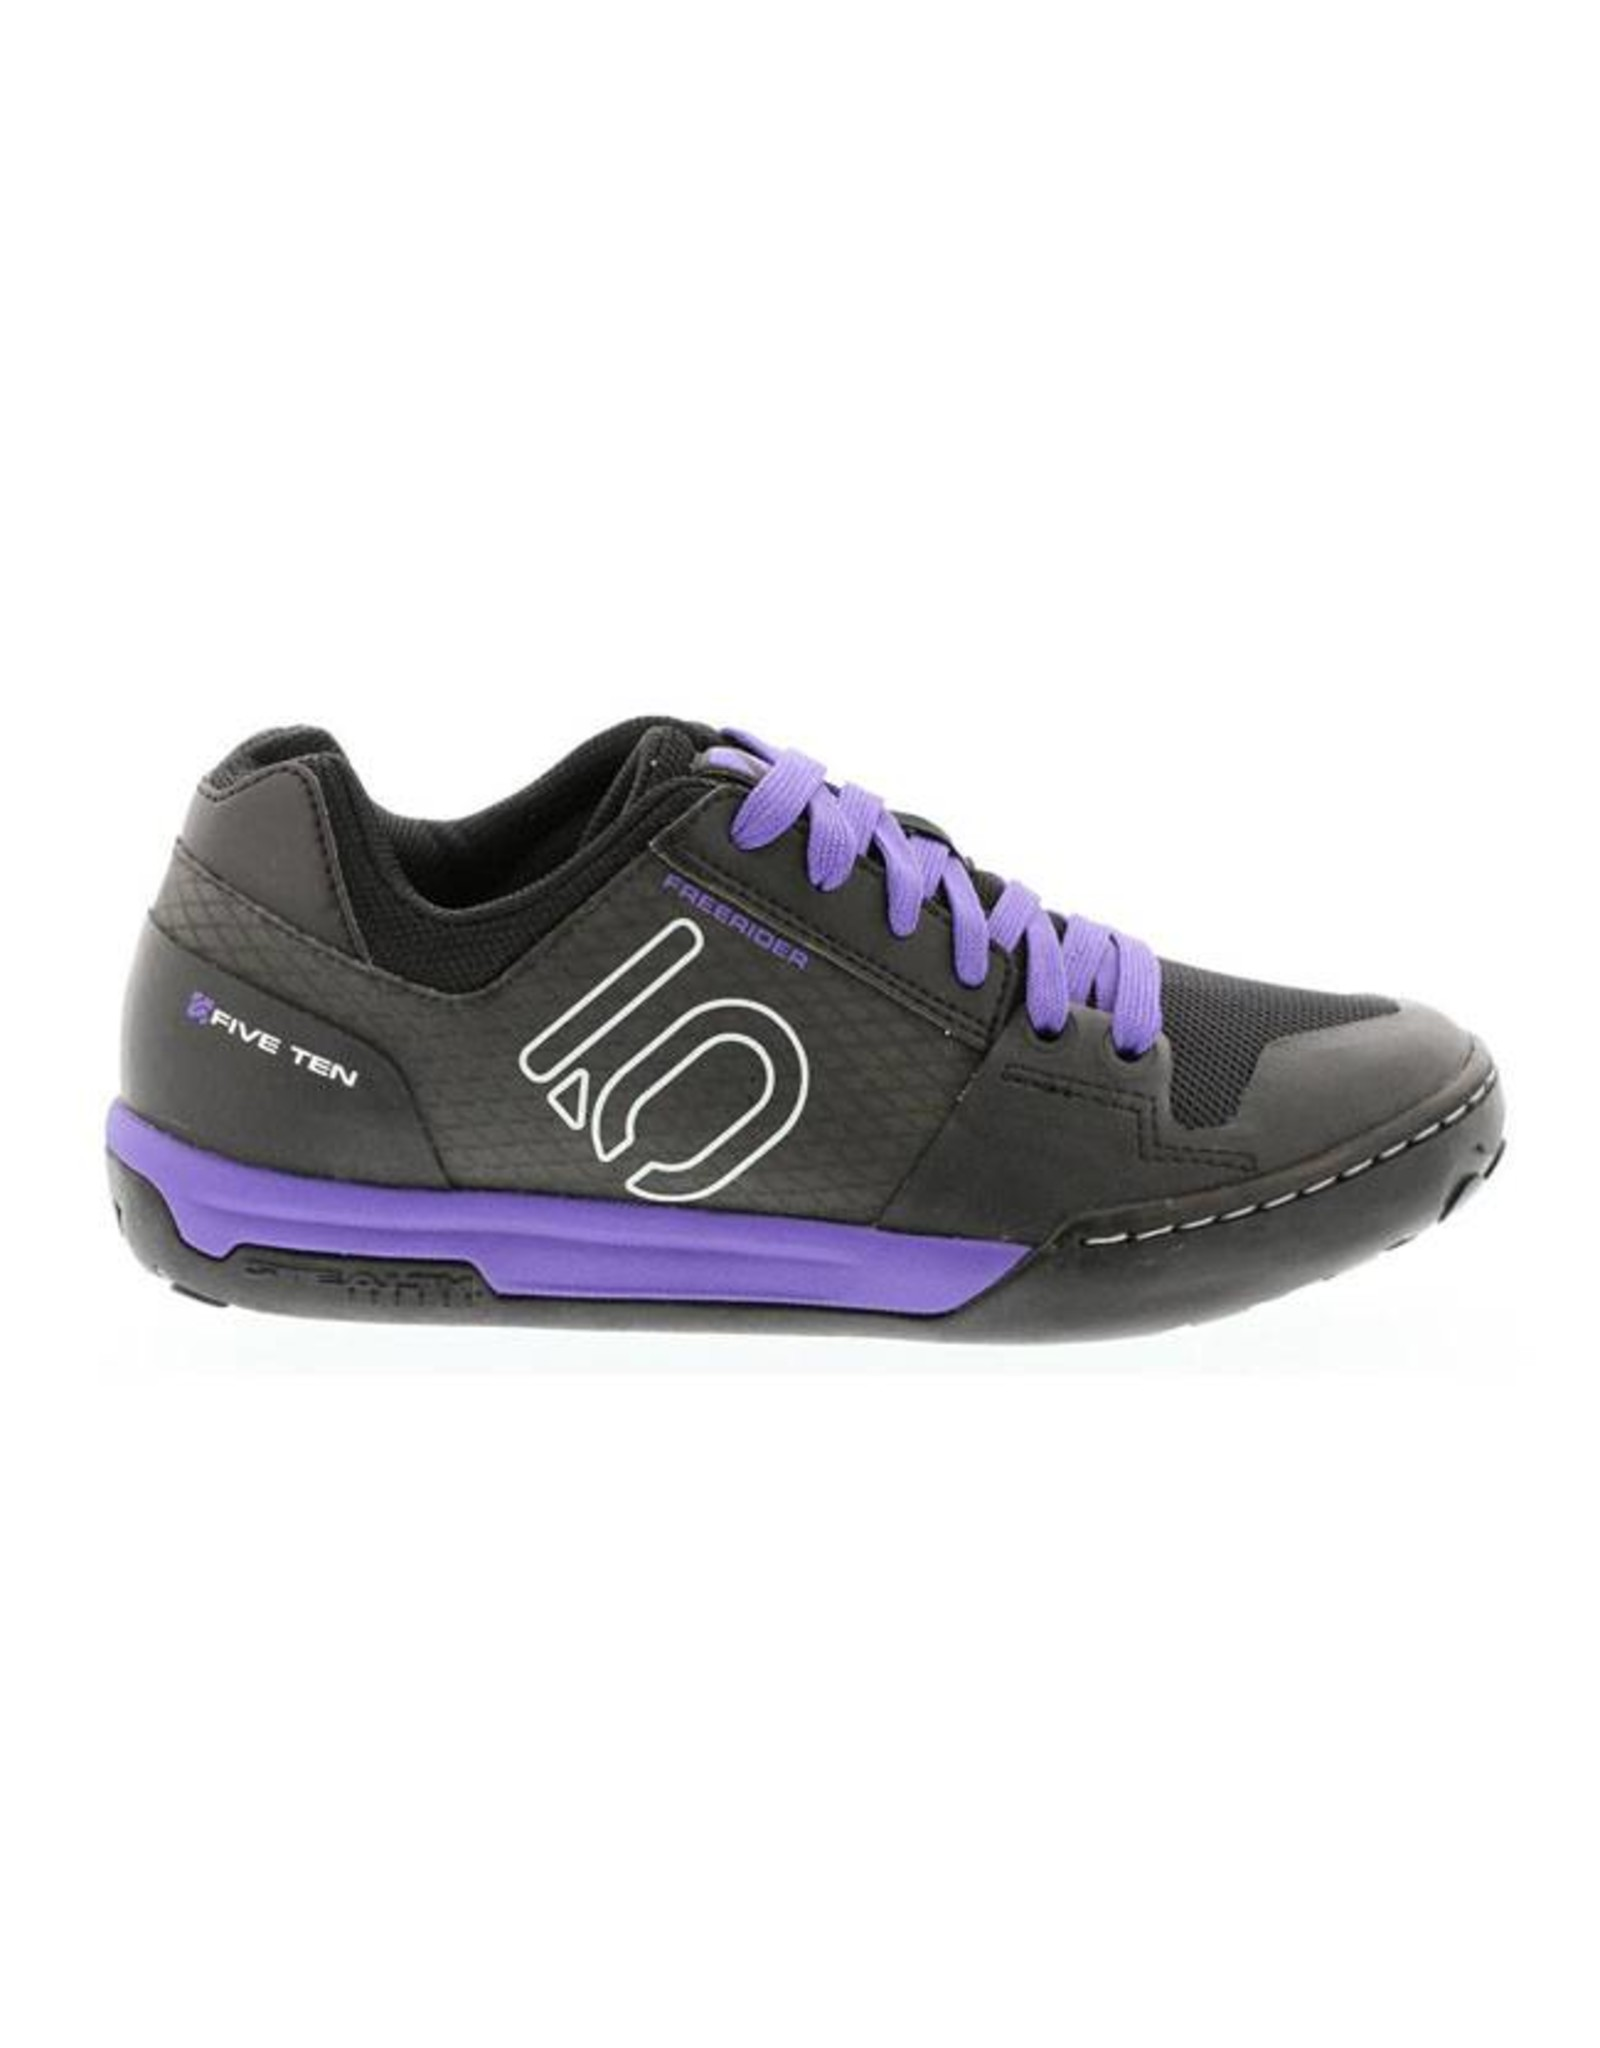 Five Ten Five Ten Freerider Contact Women's Flat Pedal Shoe: Split Purple 11